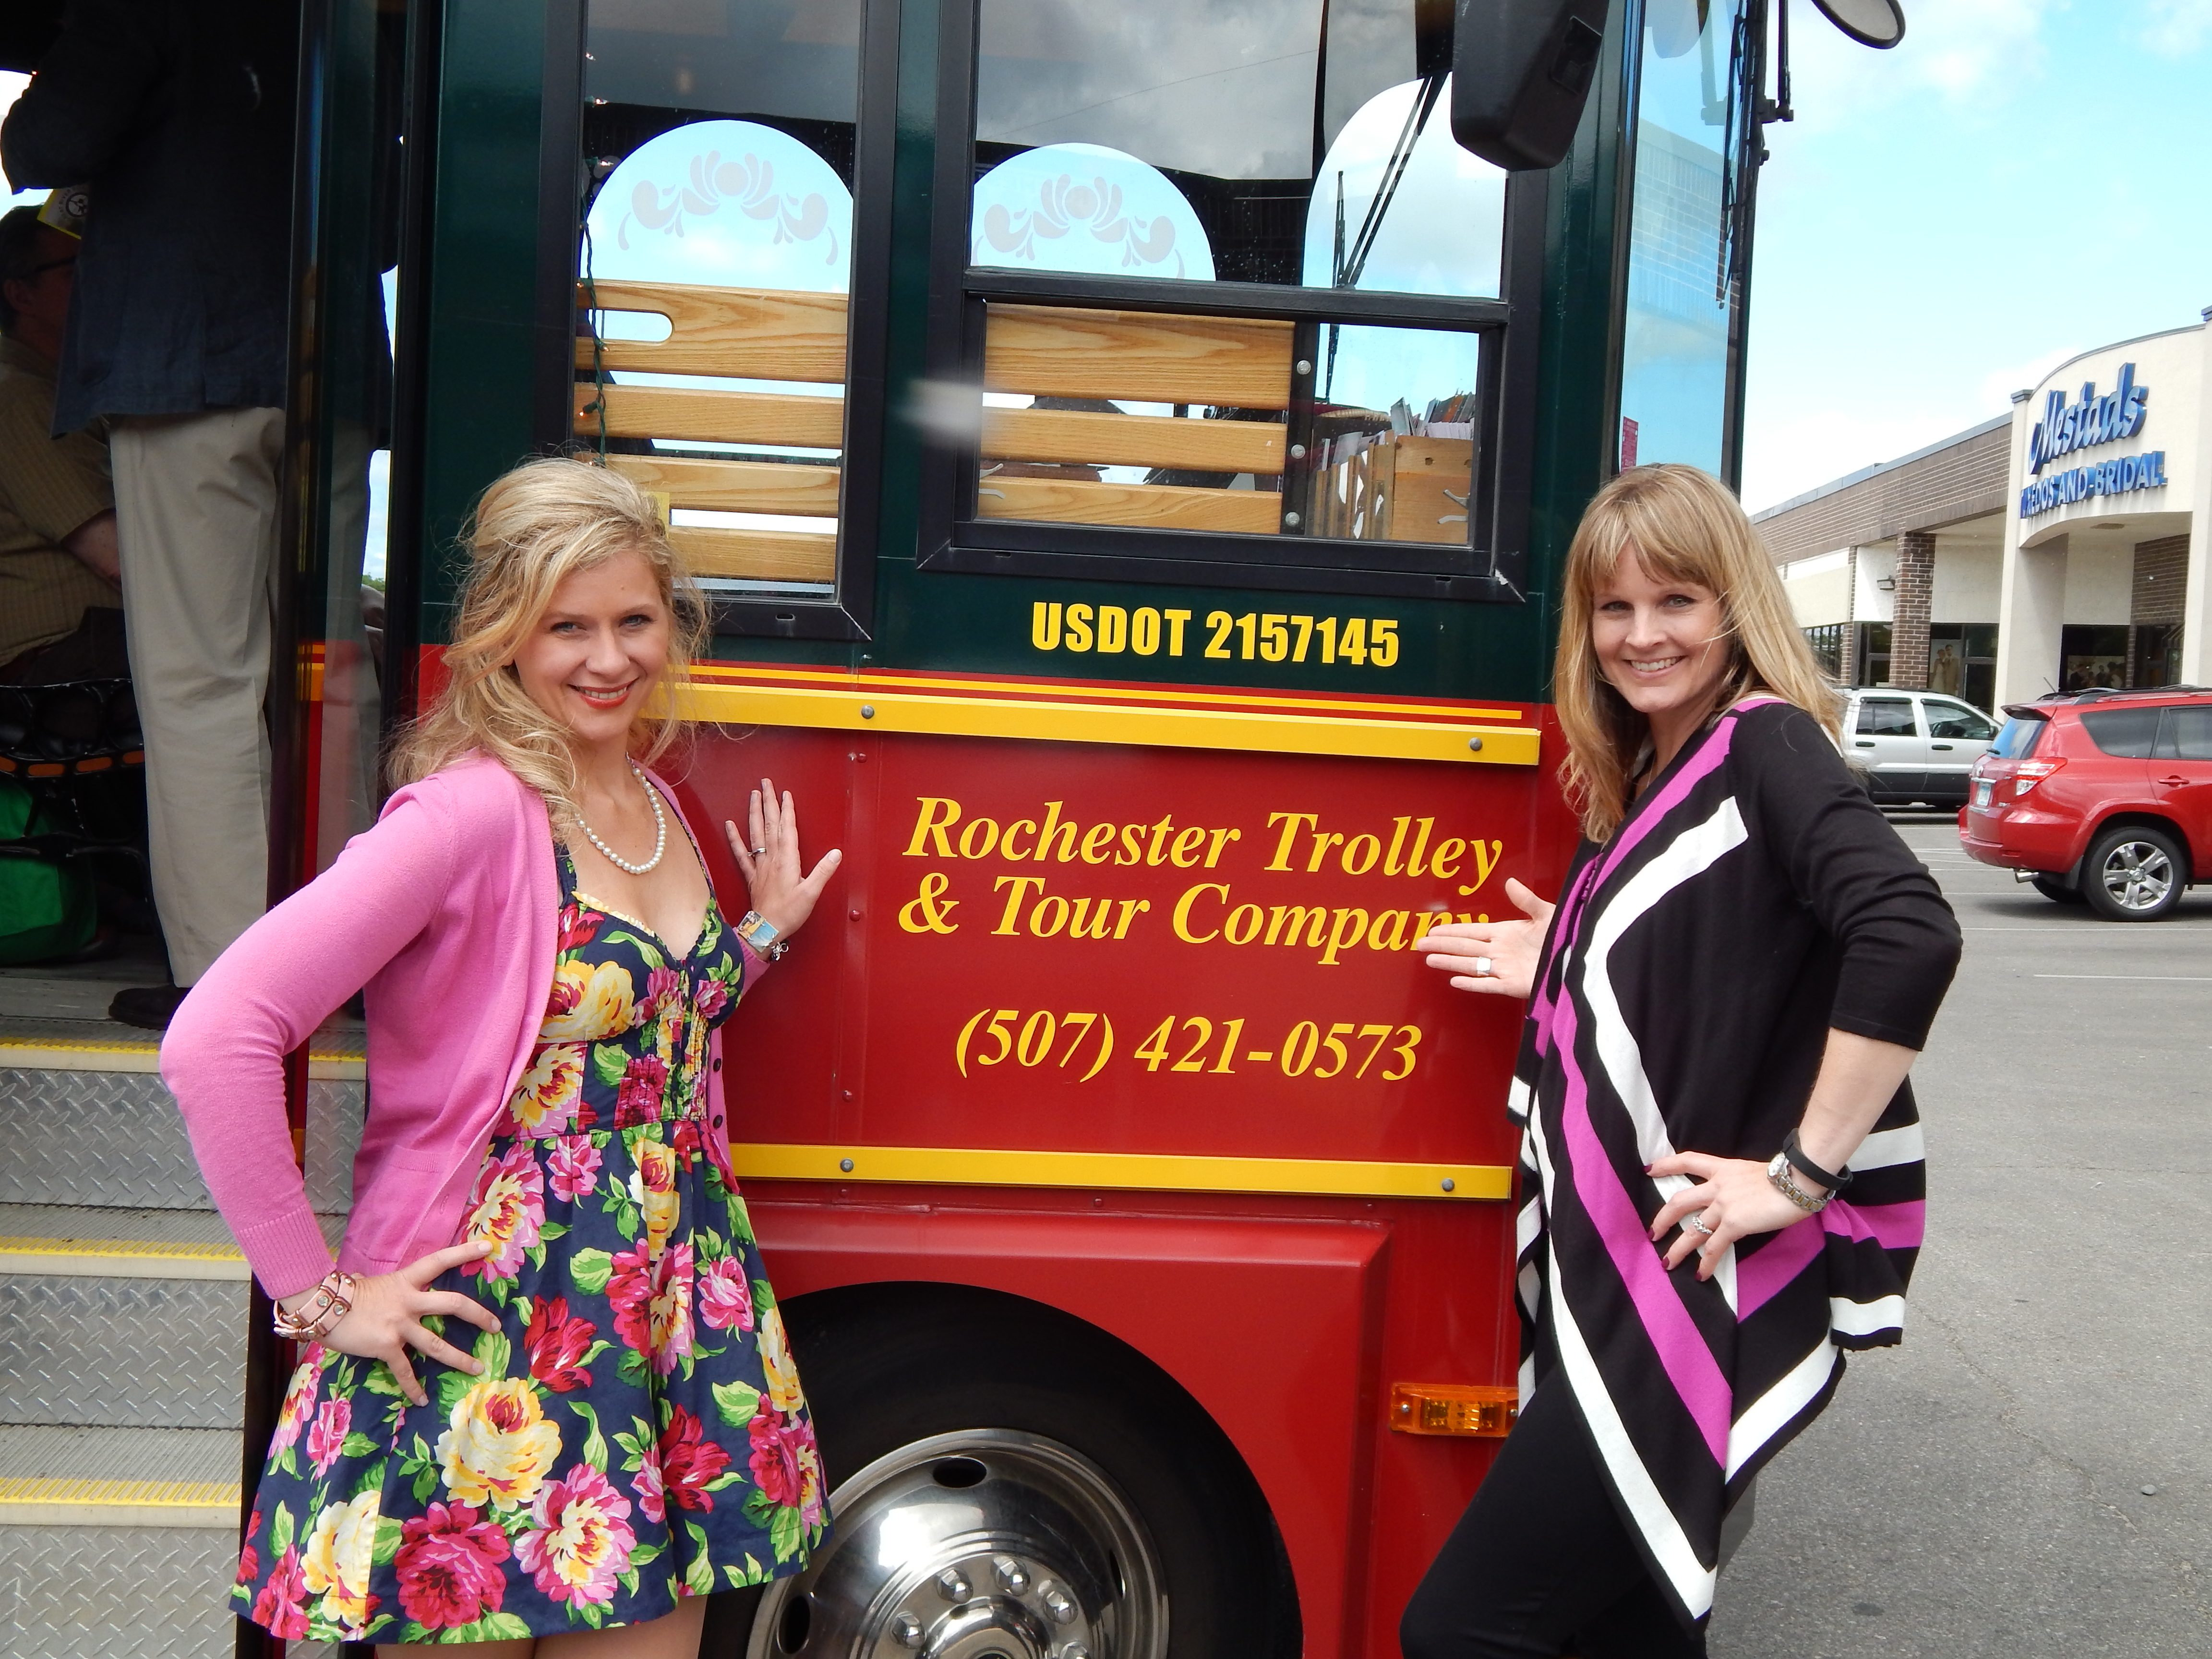 Melissa McNallan and I on our first winery tour for Rochester Women's Magazine. The two of us will be co-writing articles about Minnesota winerys.